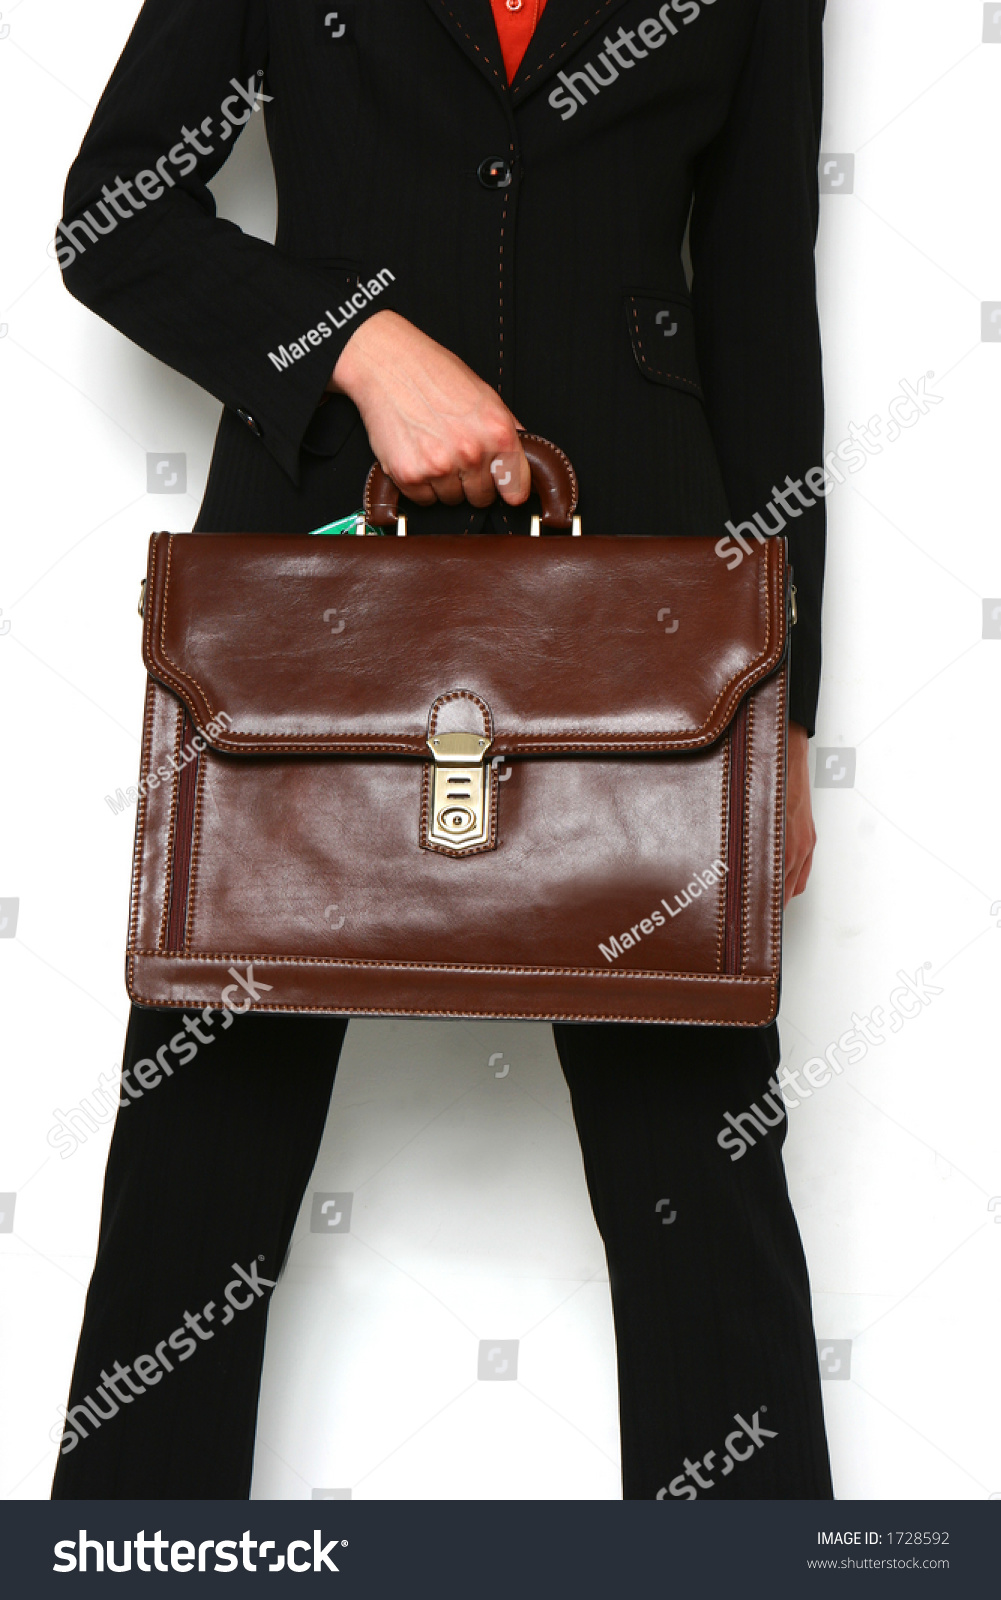 Black Suit Woman With Brown Bag Stock Photo 1728592 : Shutterstock